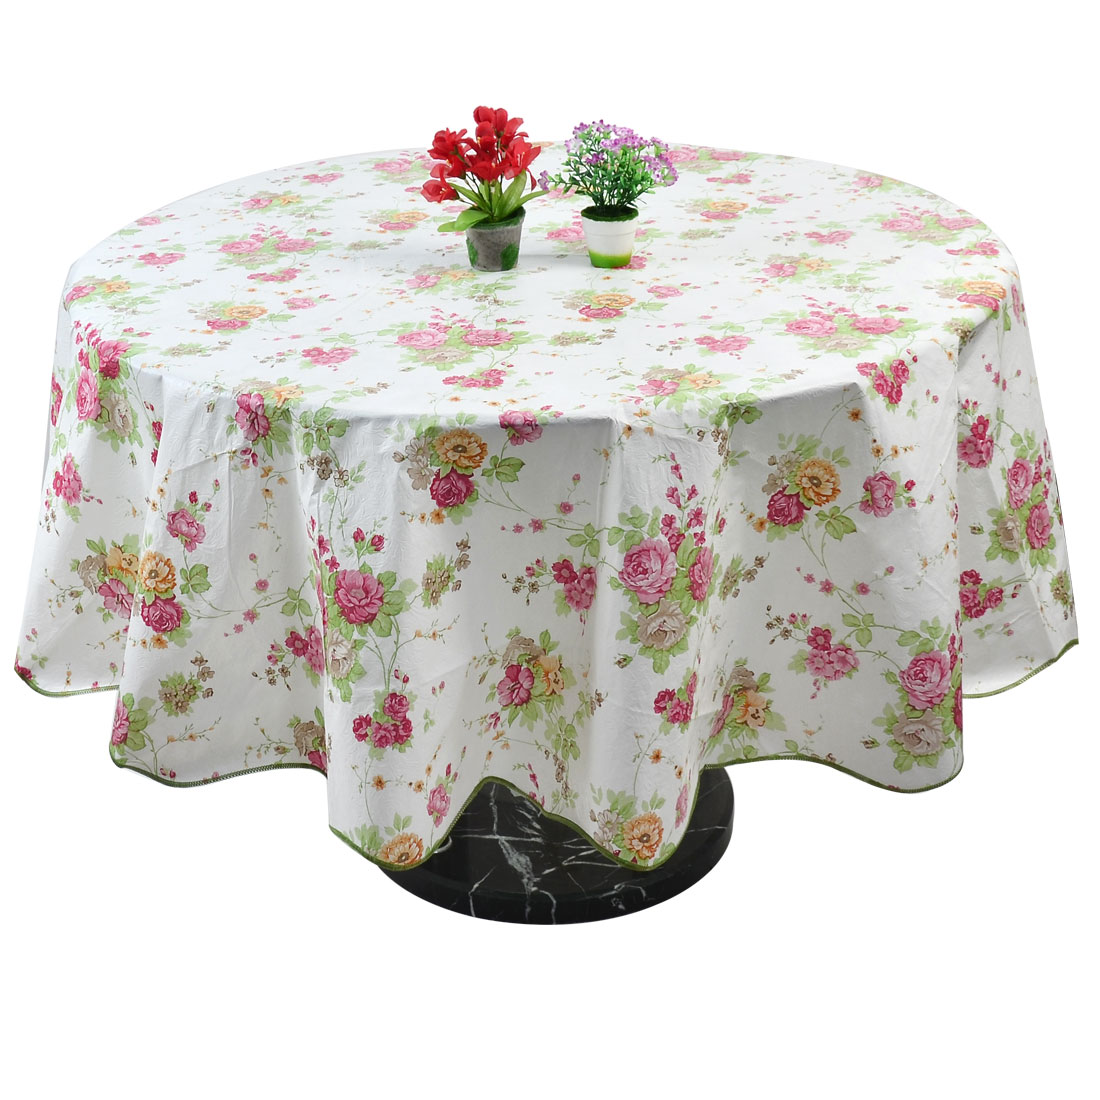 Home Rose Pattern Round Water Resistant Tablecloth Table Cloth Cover Pink